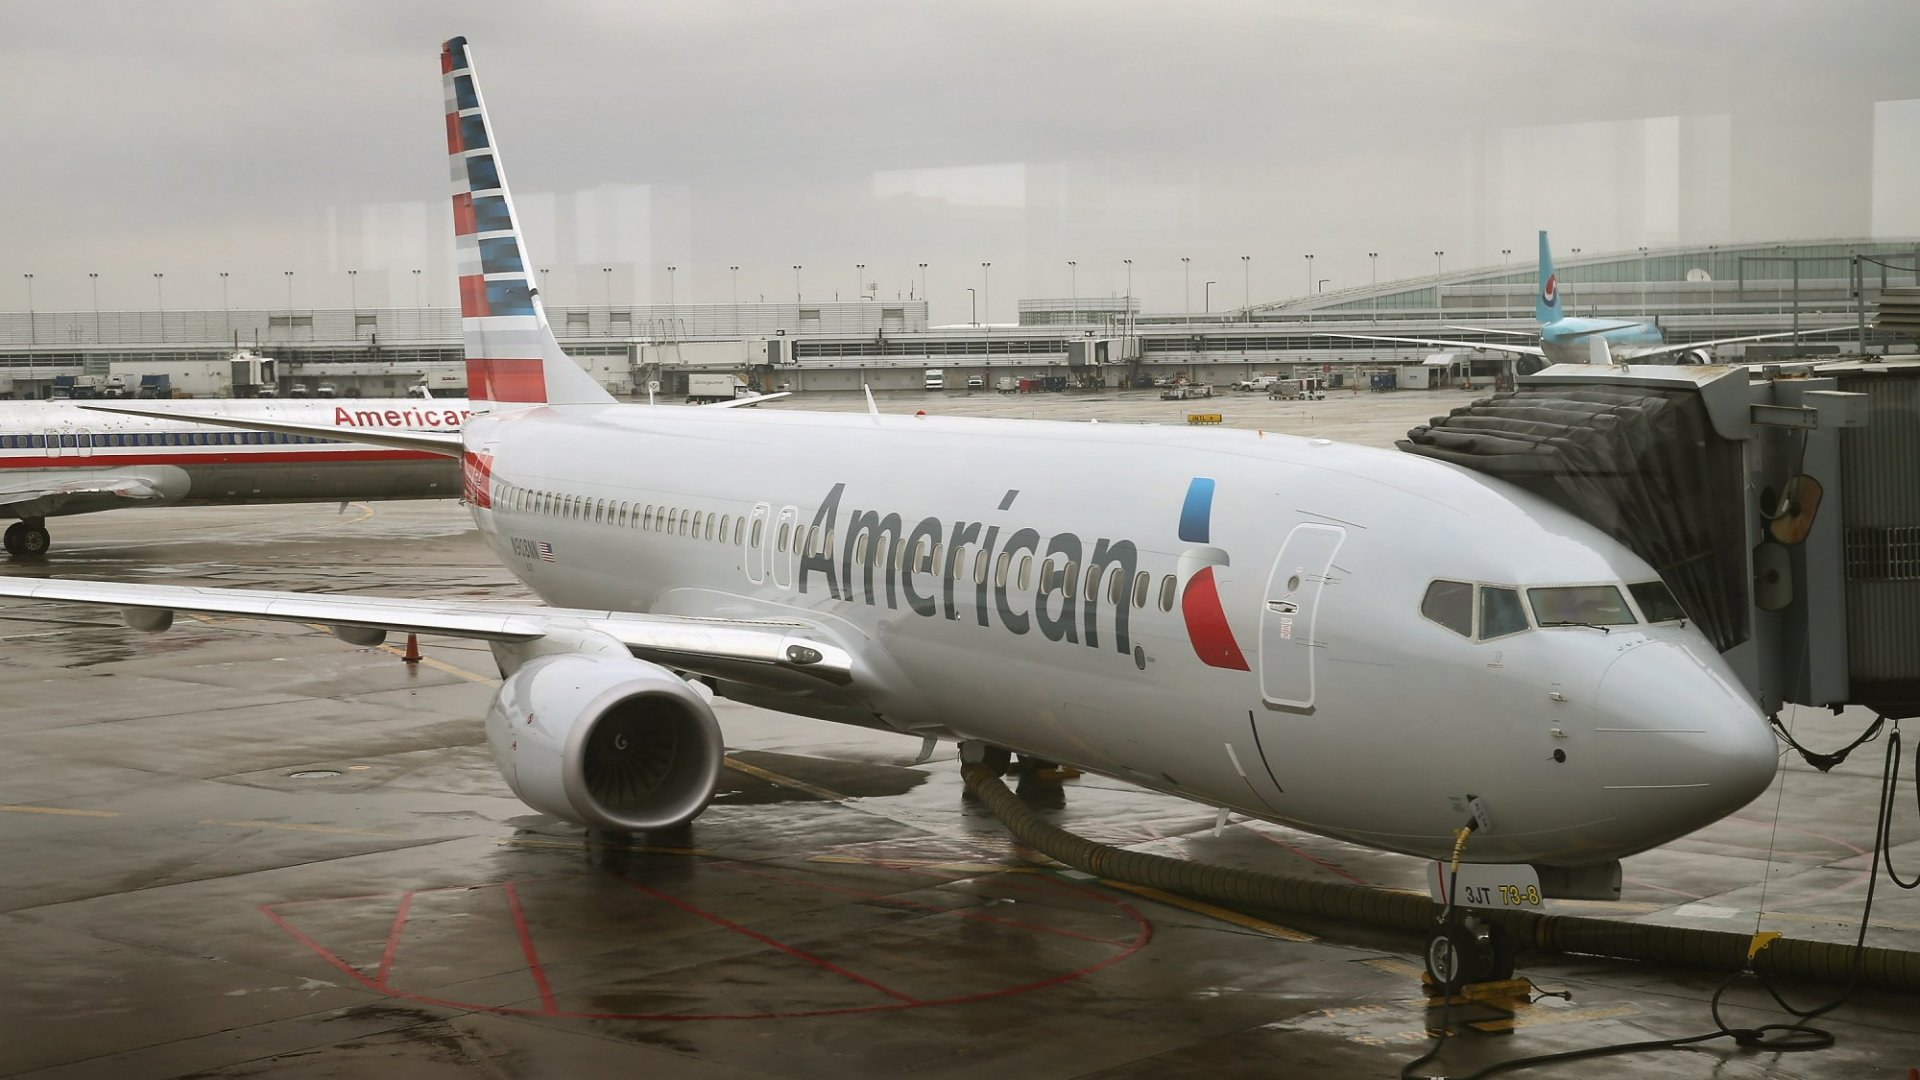 American Airlines Just Took a Massive Survey of 41,858 Employees. The Results Leaked, and They'reTruly Incredible